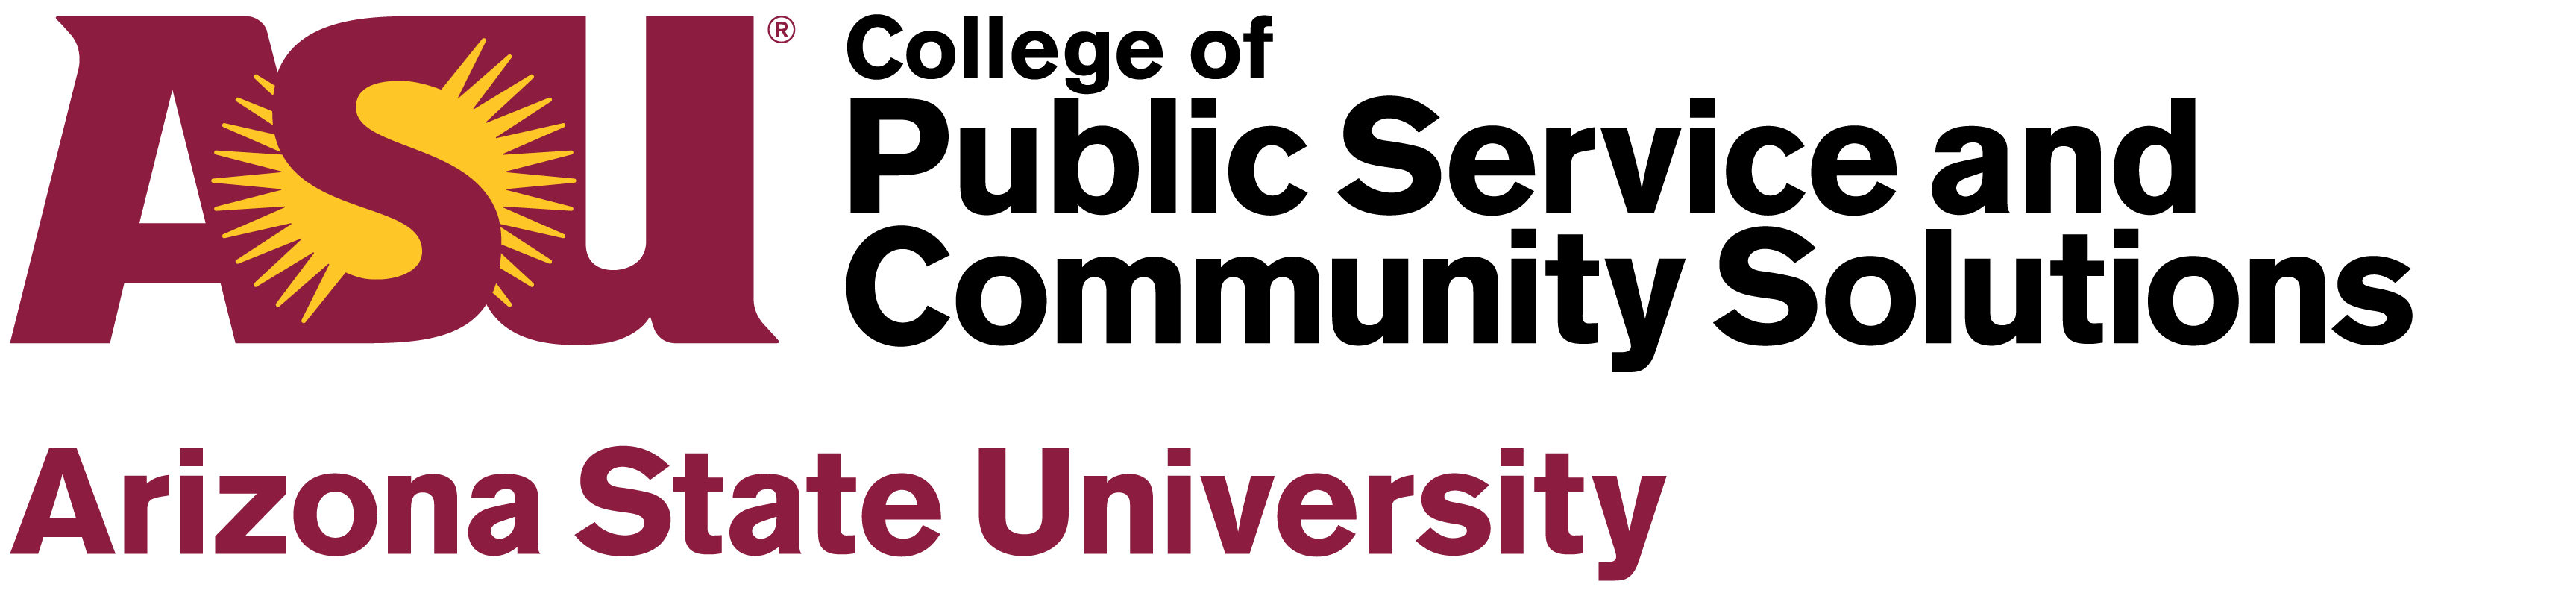 ASU College of Public Service and Community Solutions logo